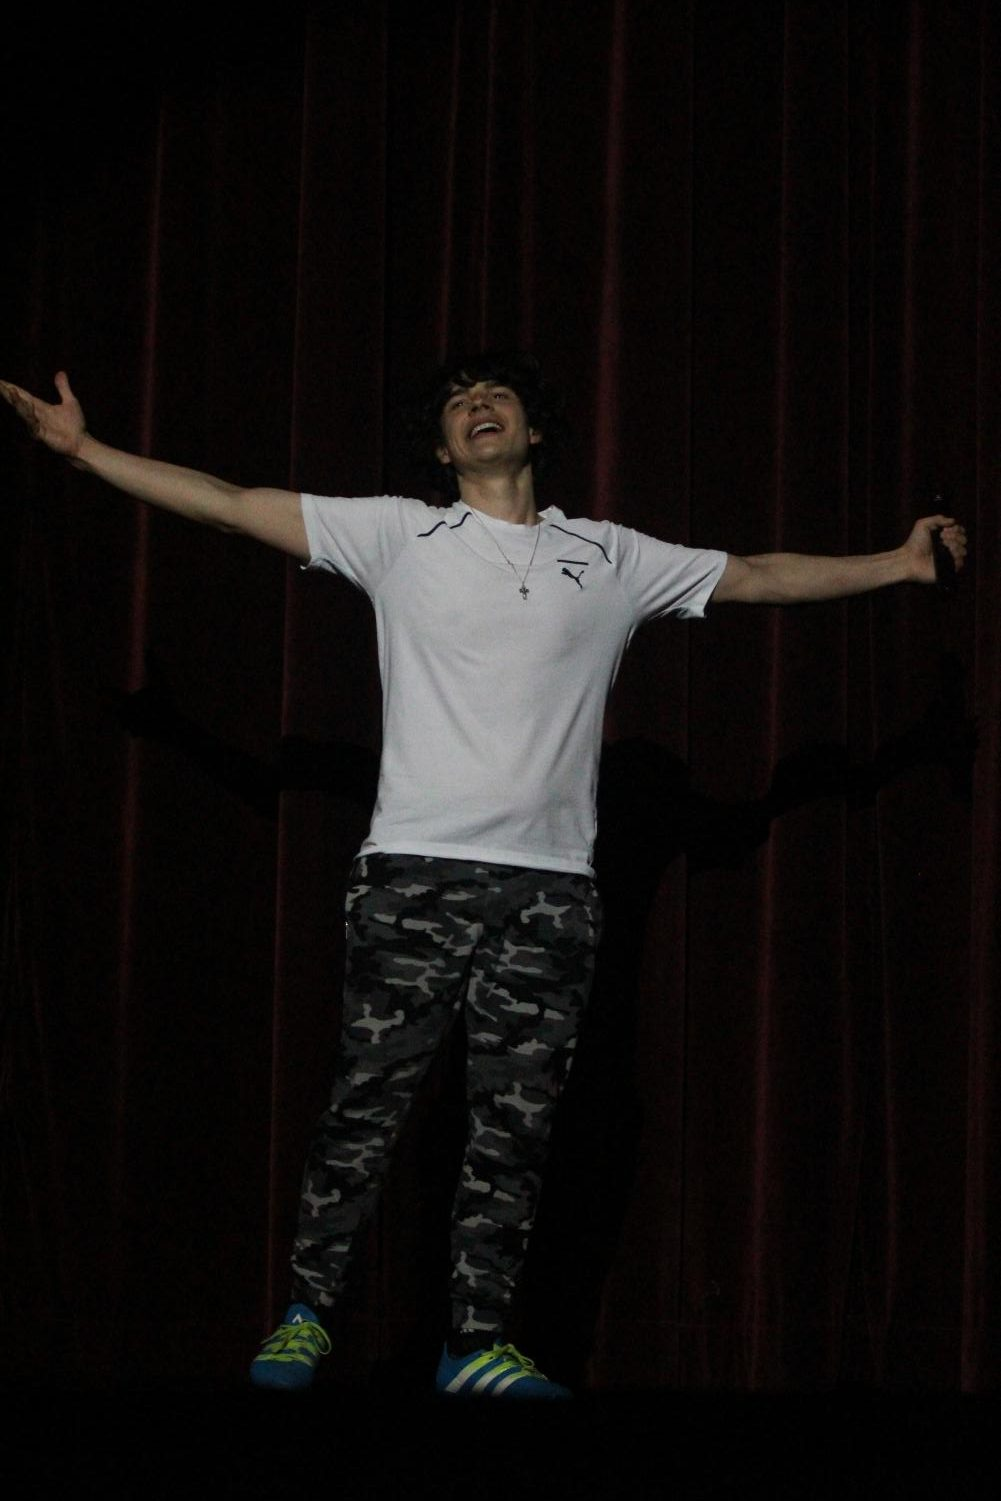 Senior+and+contestant+Phillip+Kostin+performs+a+motivational+speech-turned+rap+during+the+talent+portion+of+the+Mr.+Watkins+Mill+contest.+